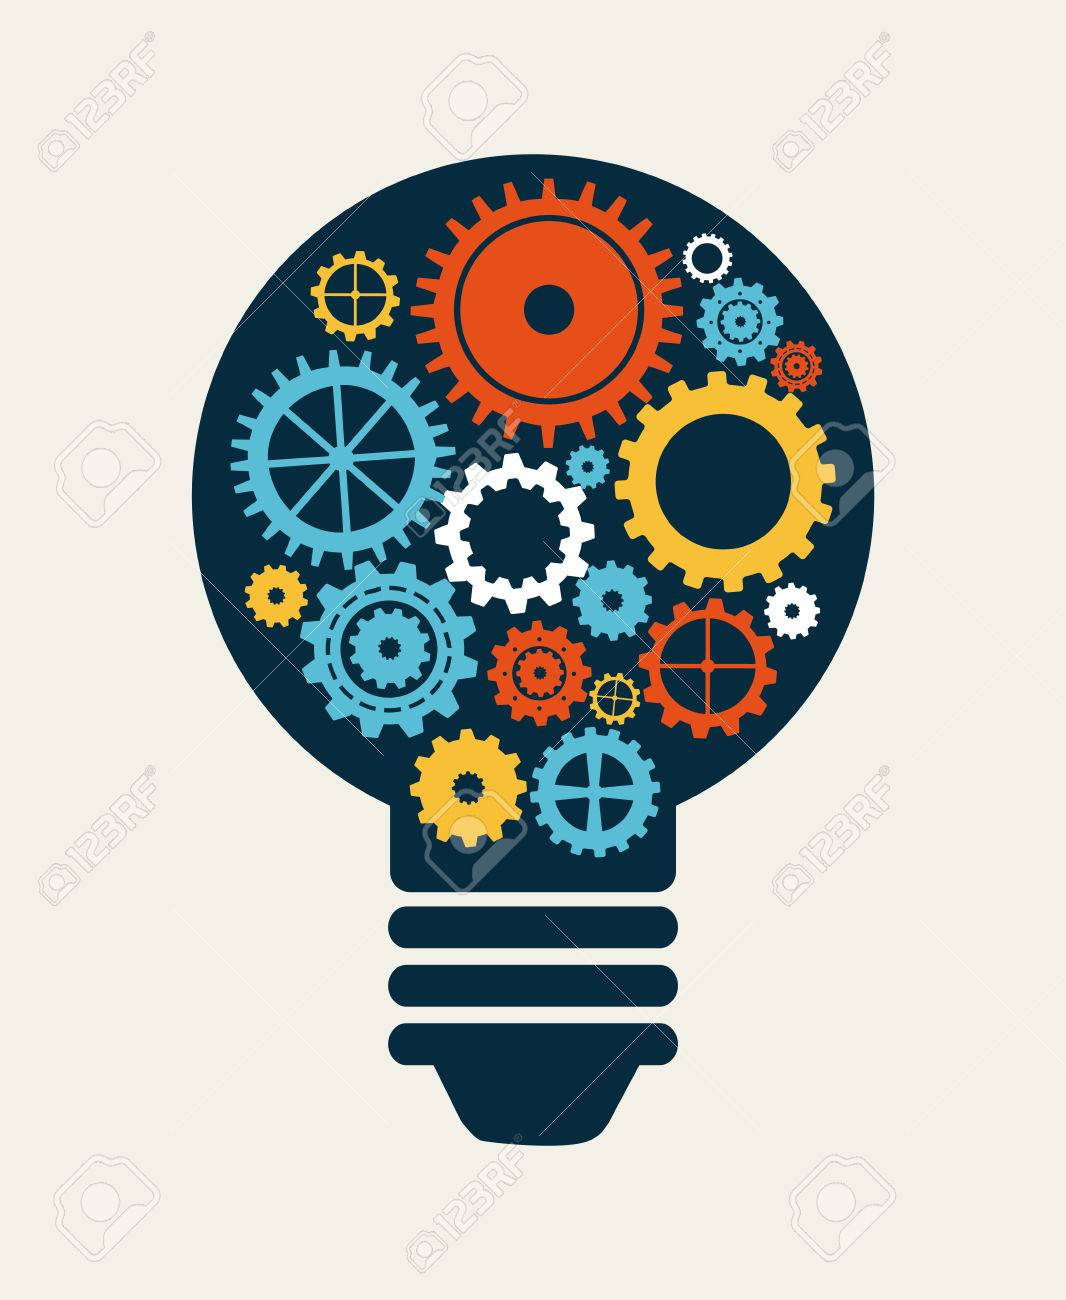 Light Bulb Industry: Light bulb with gears, Industry concept Stock Vector - 26423609,Lighting